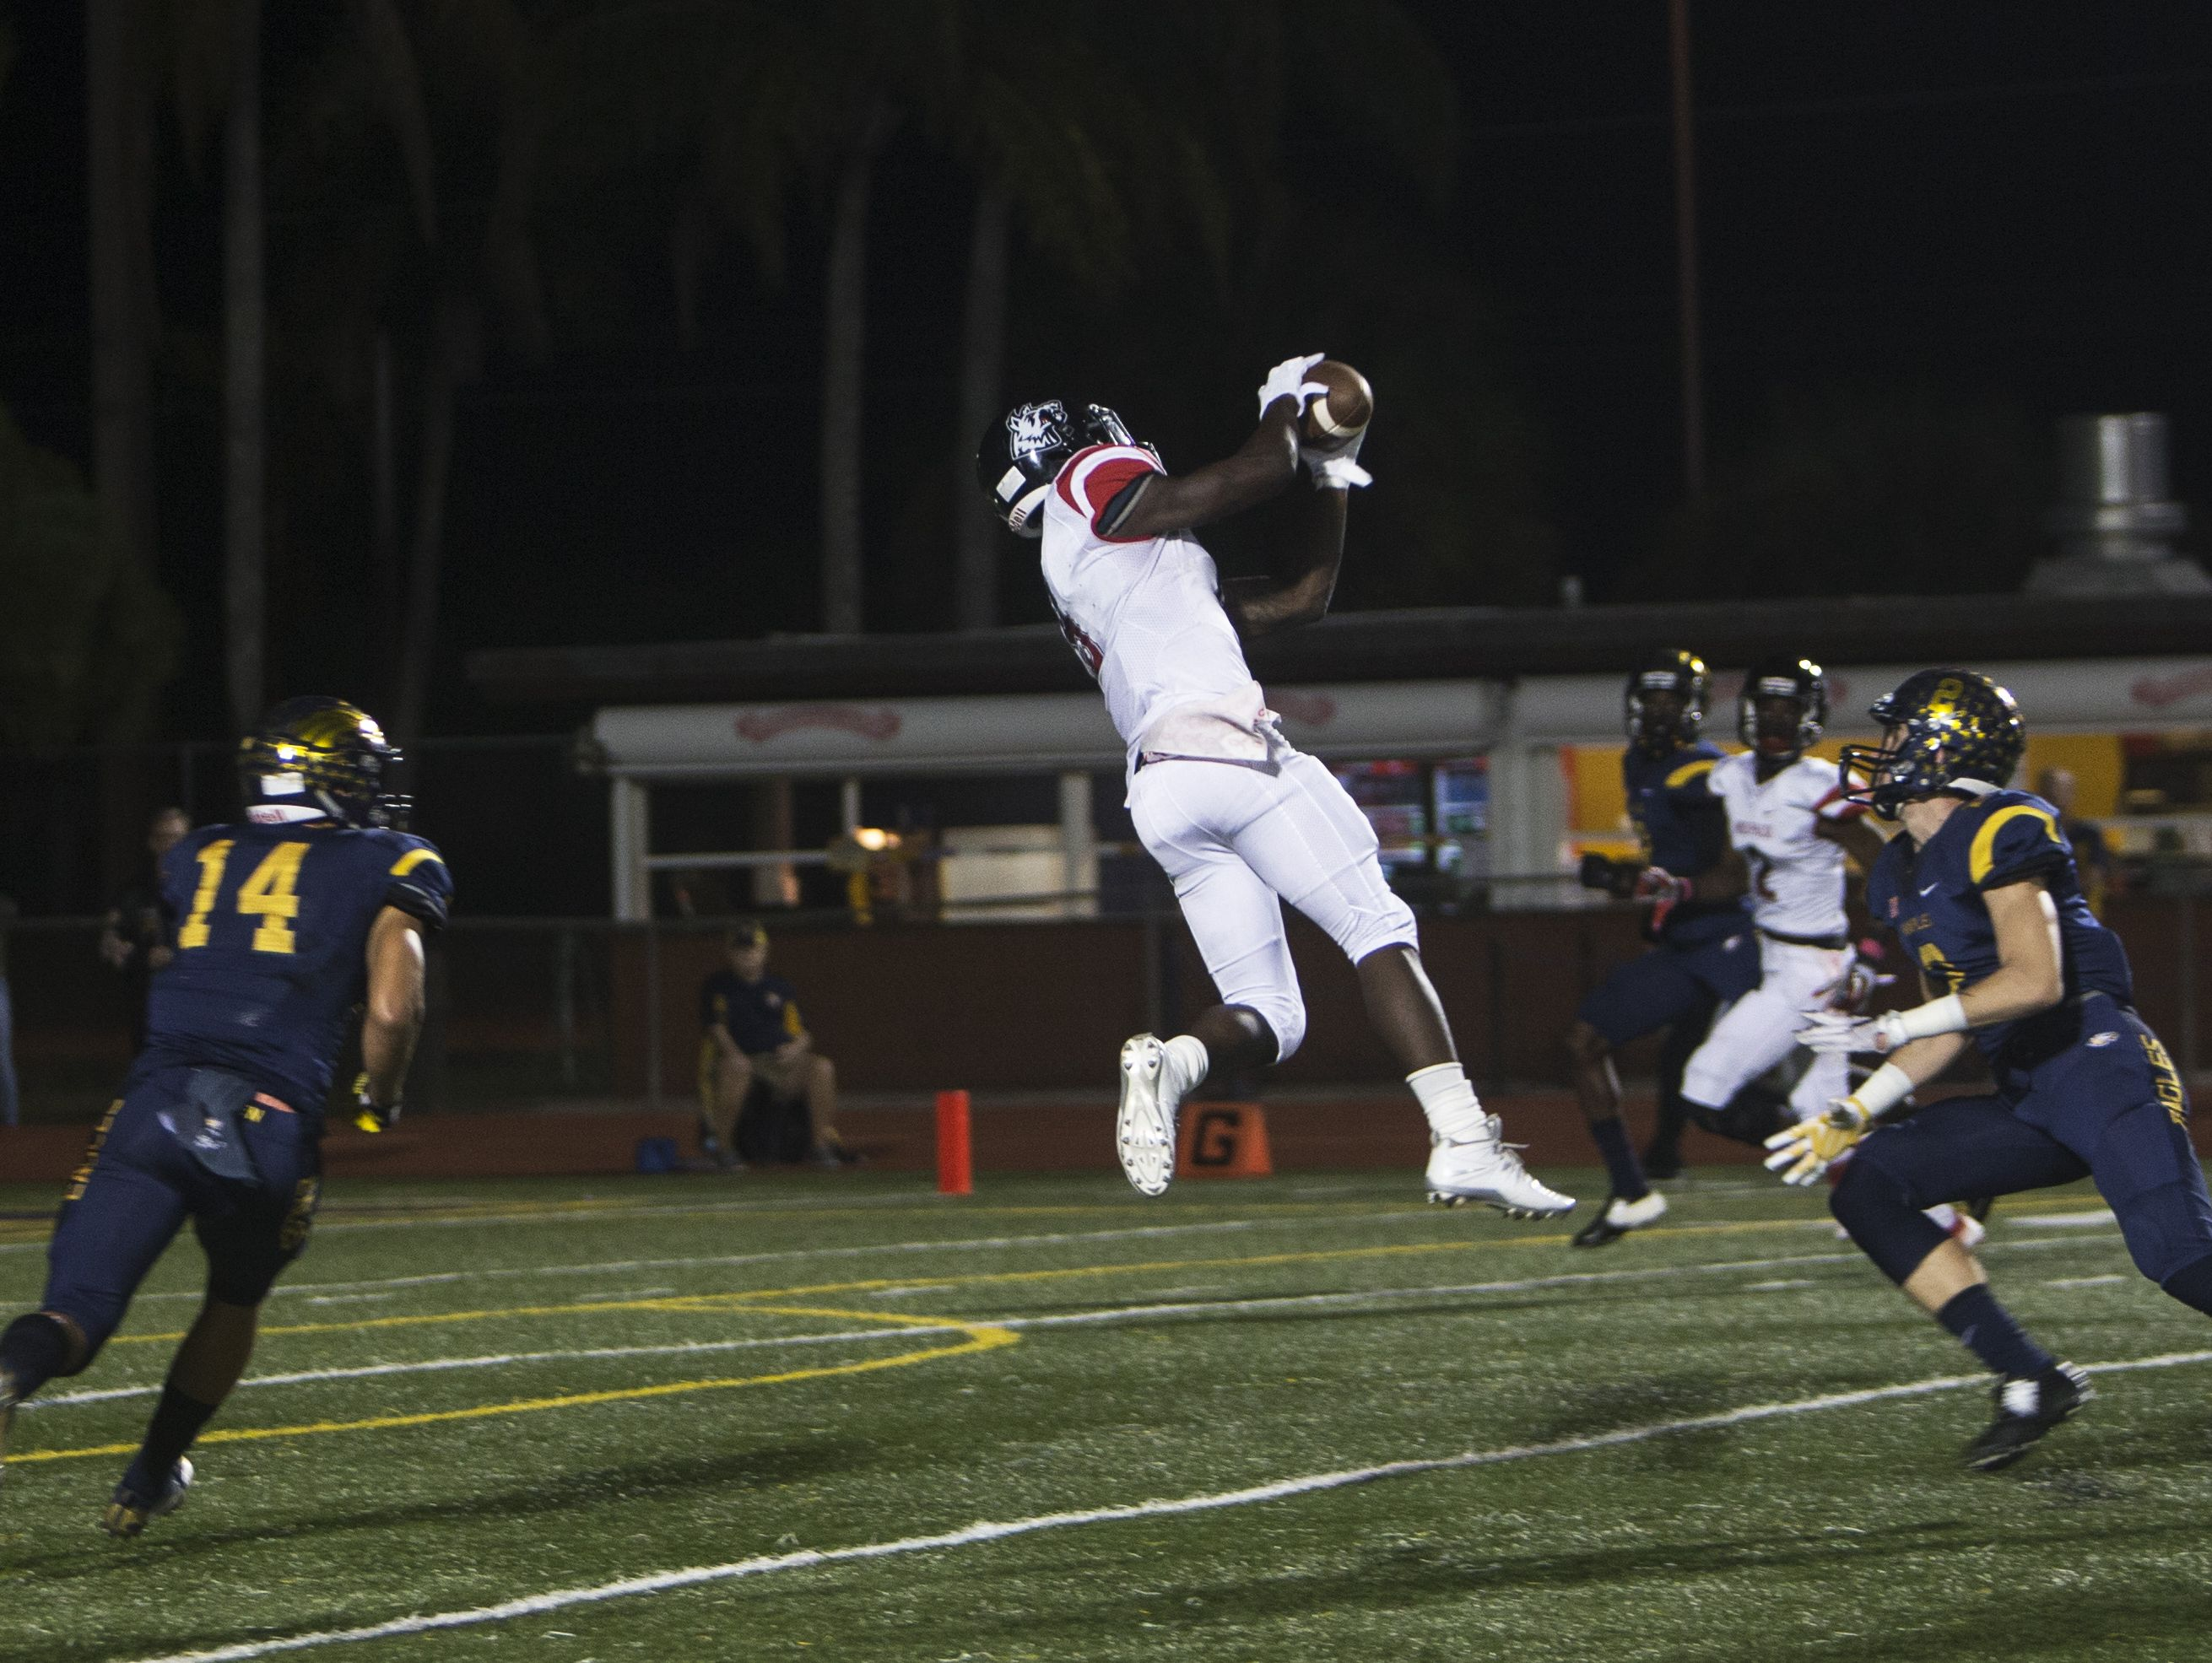 South Fort Myers running back E'Quan Dorris jumps to catch the ball during their matchup against Naples at Staver Field on Friday,